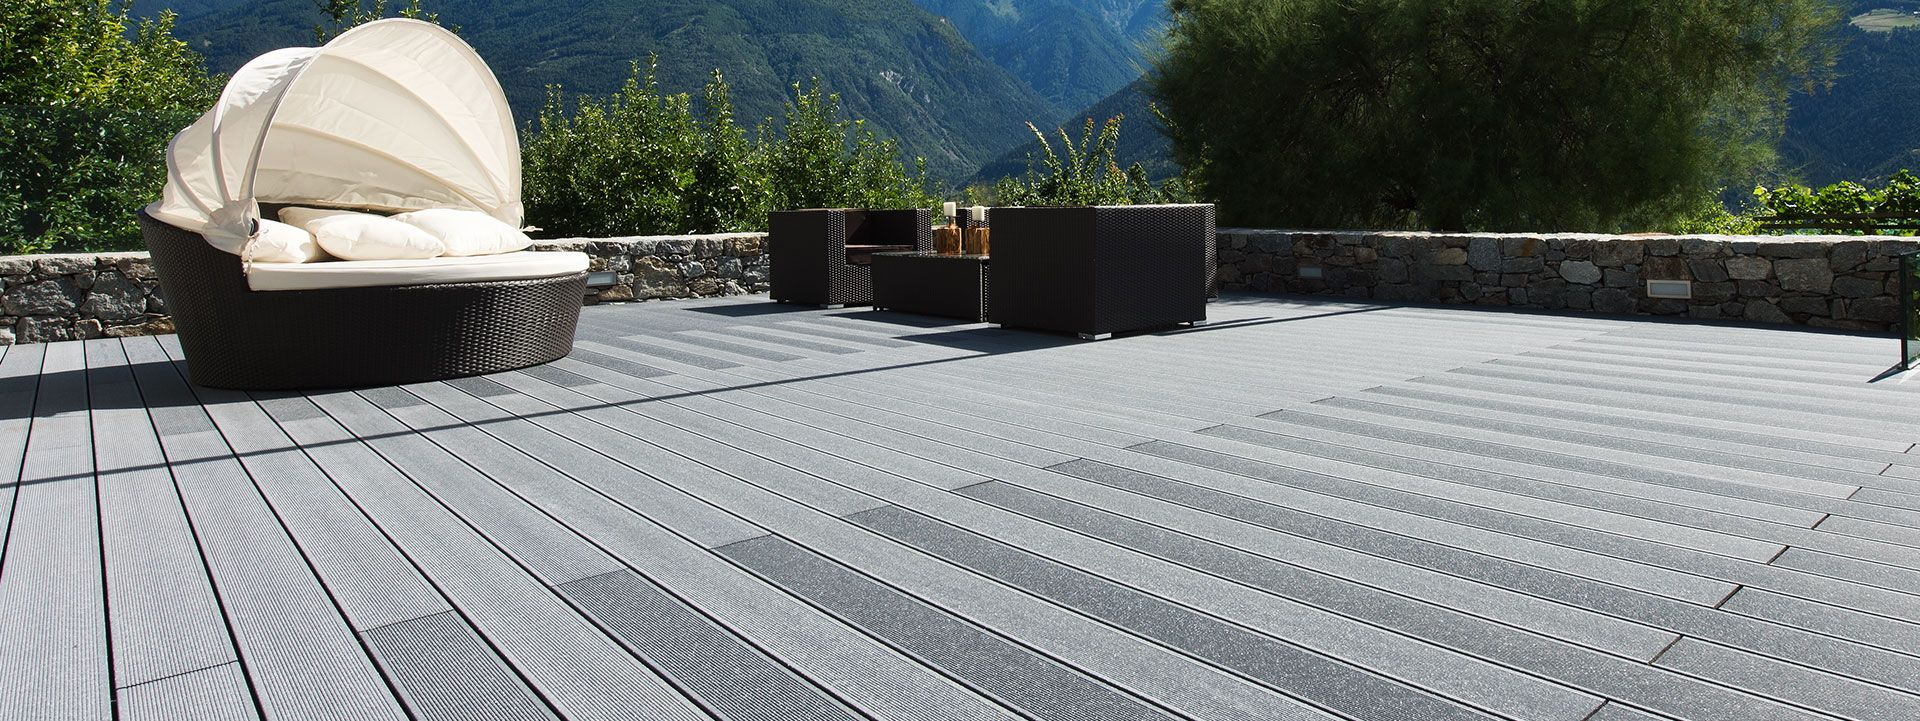 Wonderful Plastic Patio Deck Materials